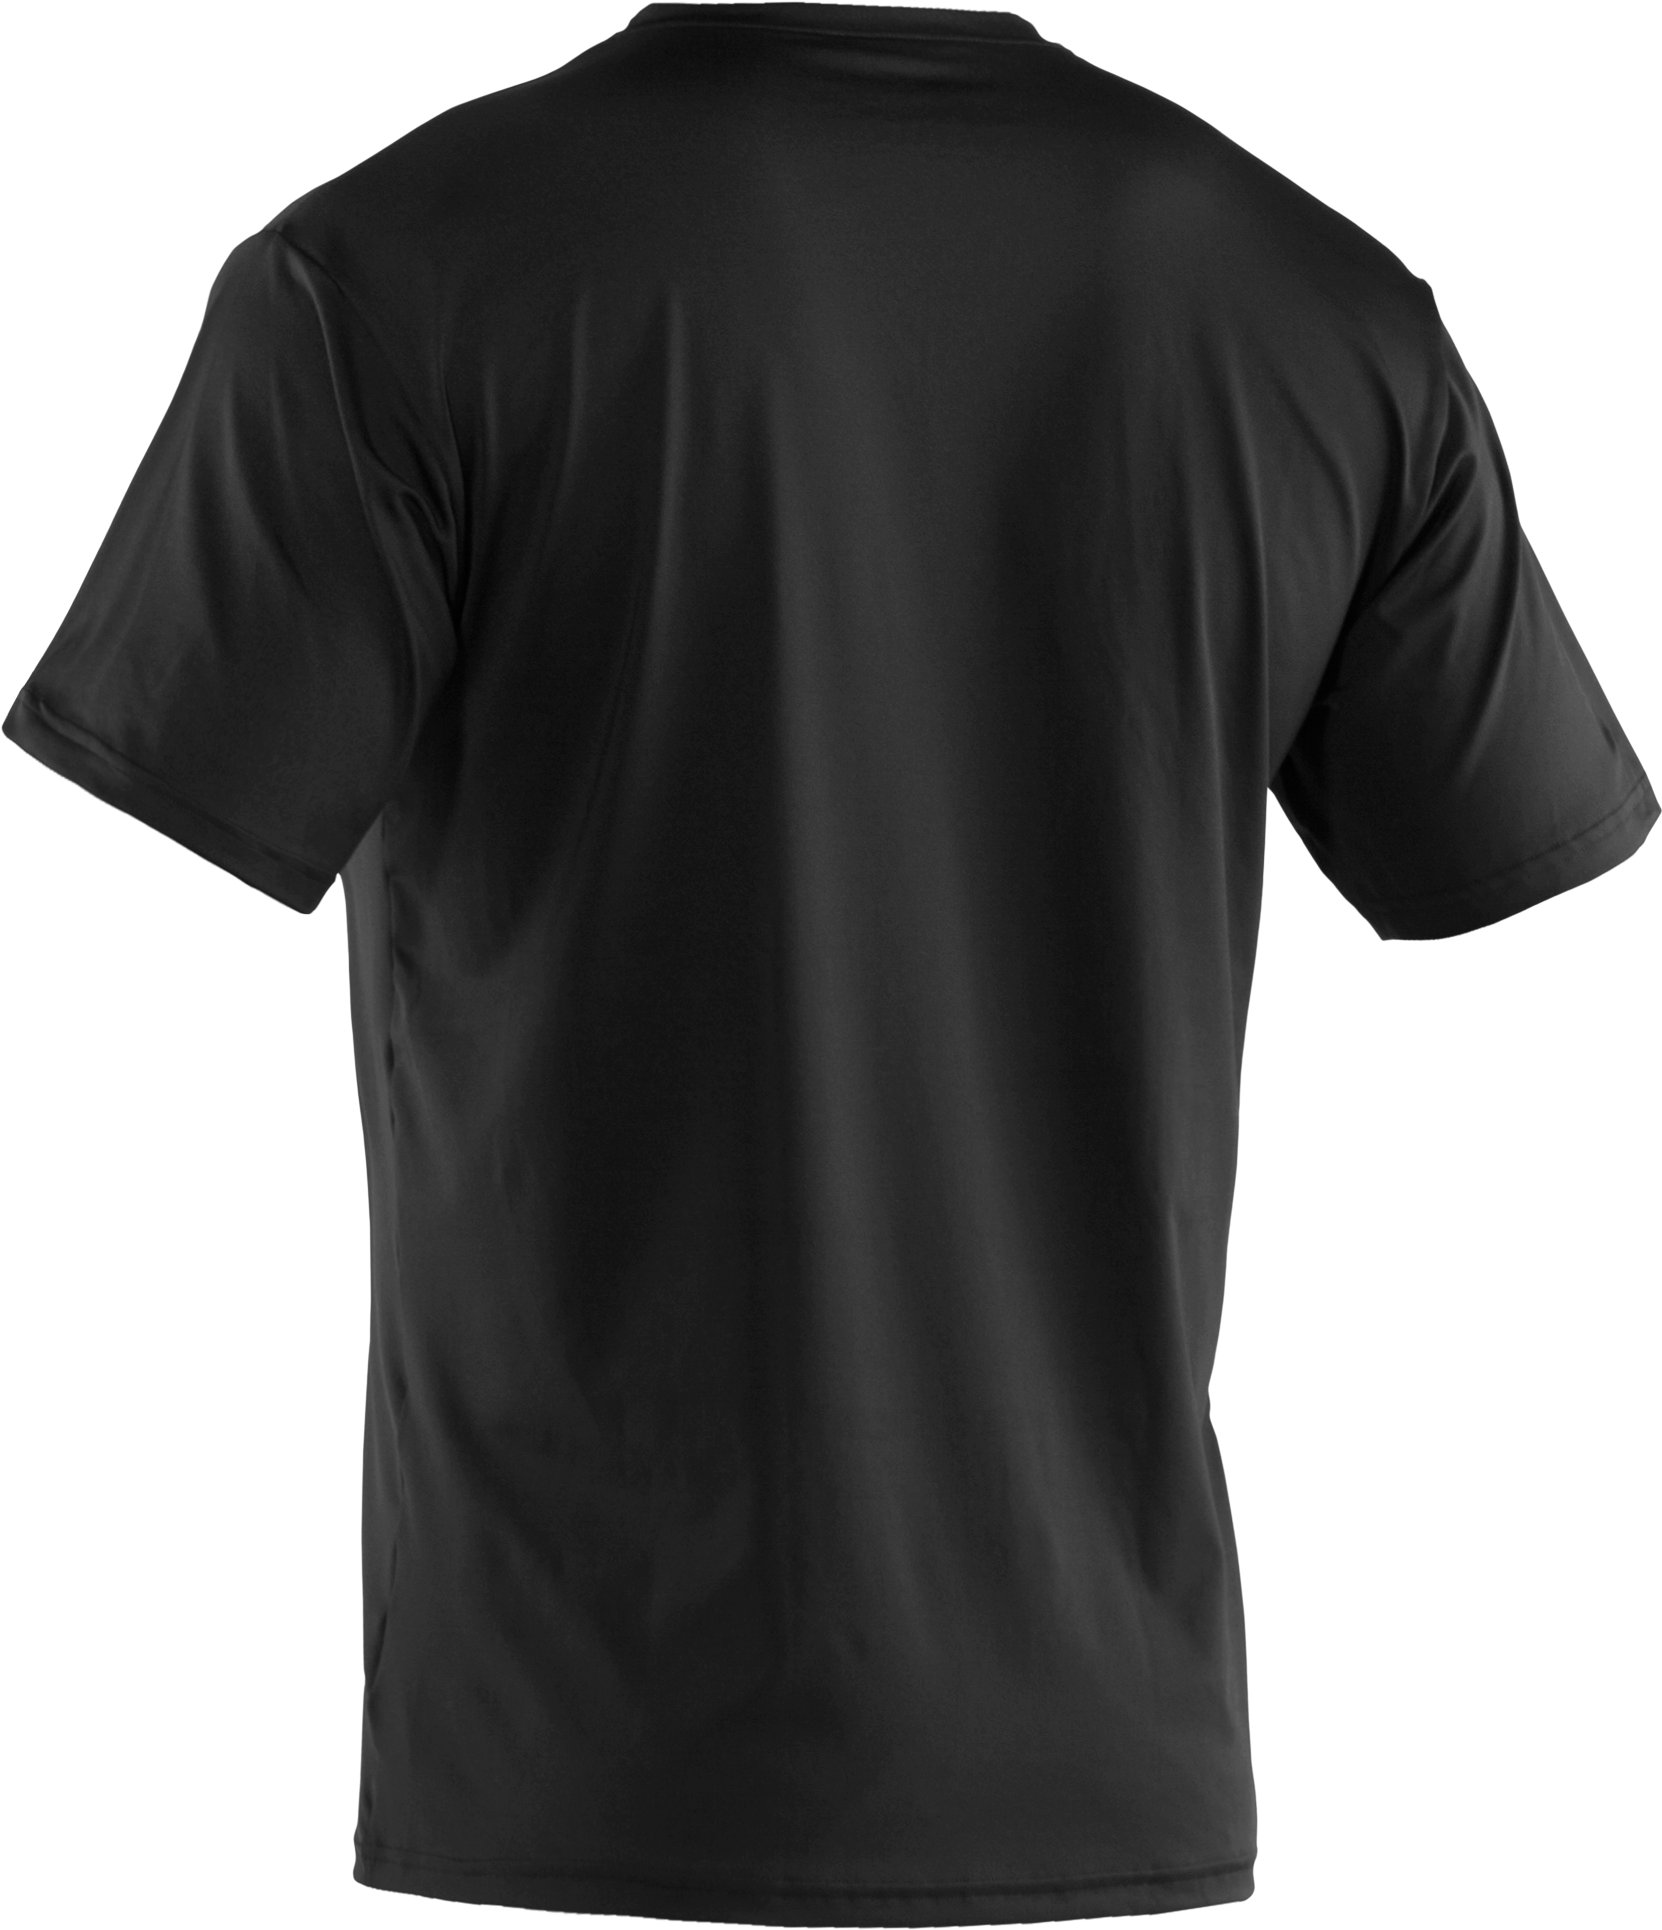 Men's The Original UA Fitted V-Neck Undershirt, Black ,